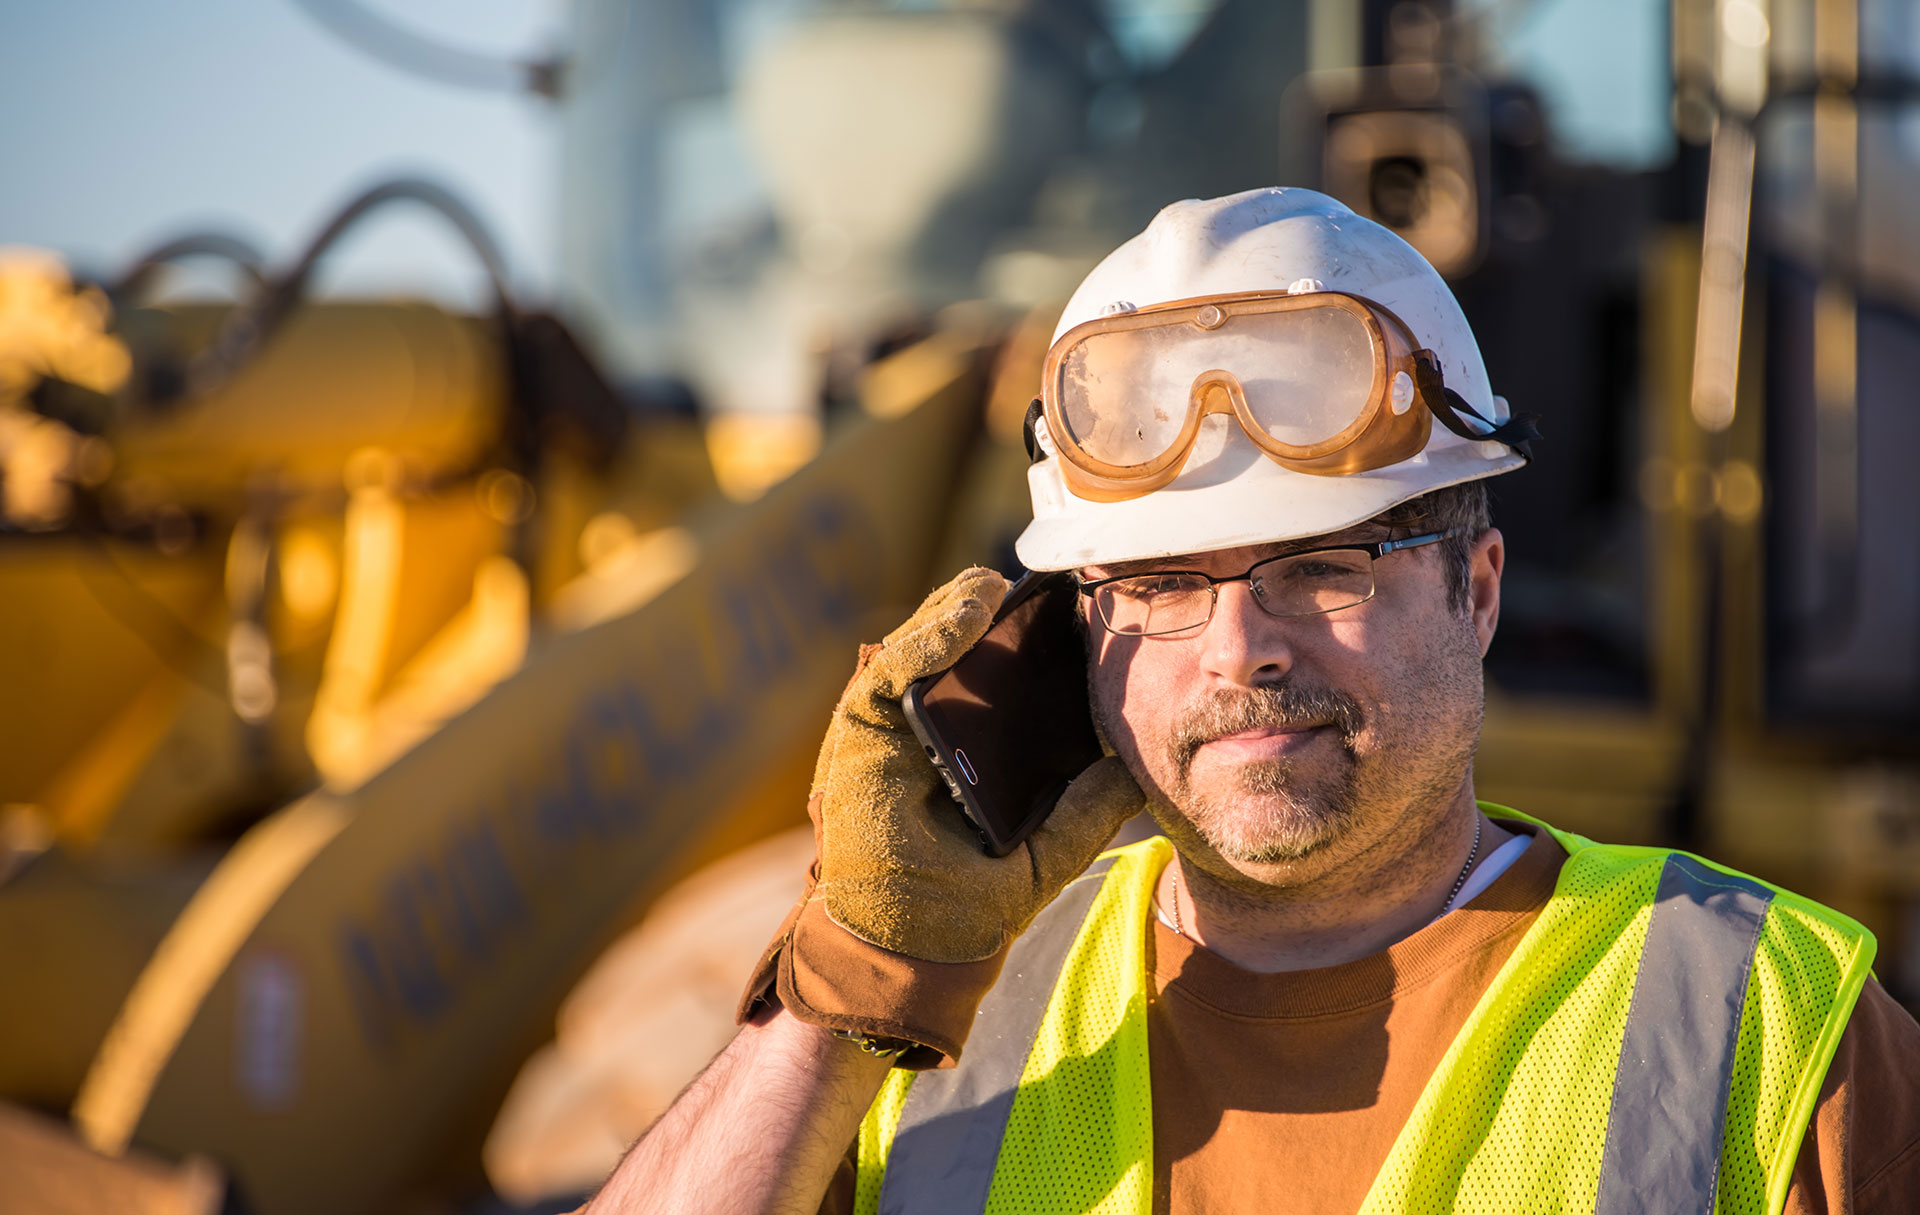 Site Worker on phone